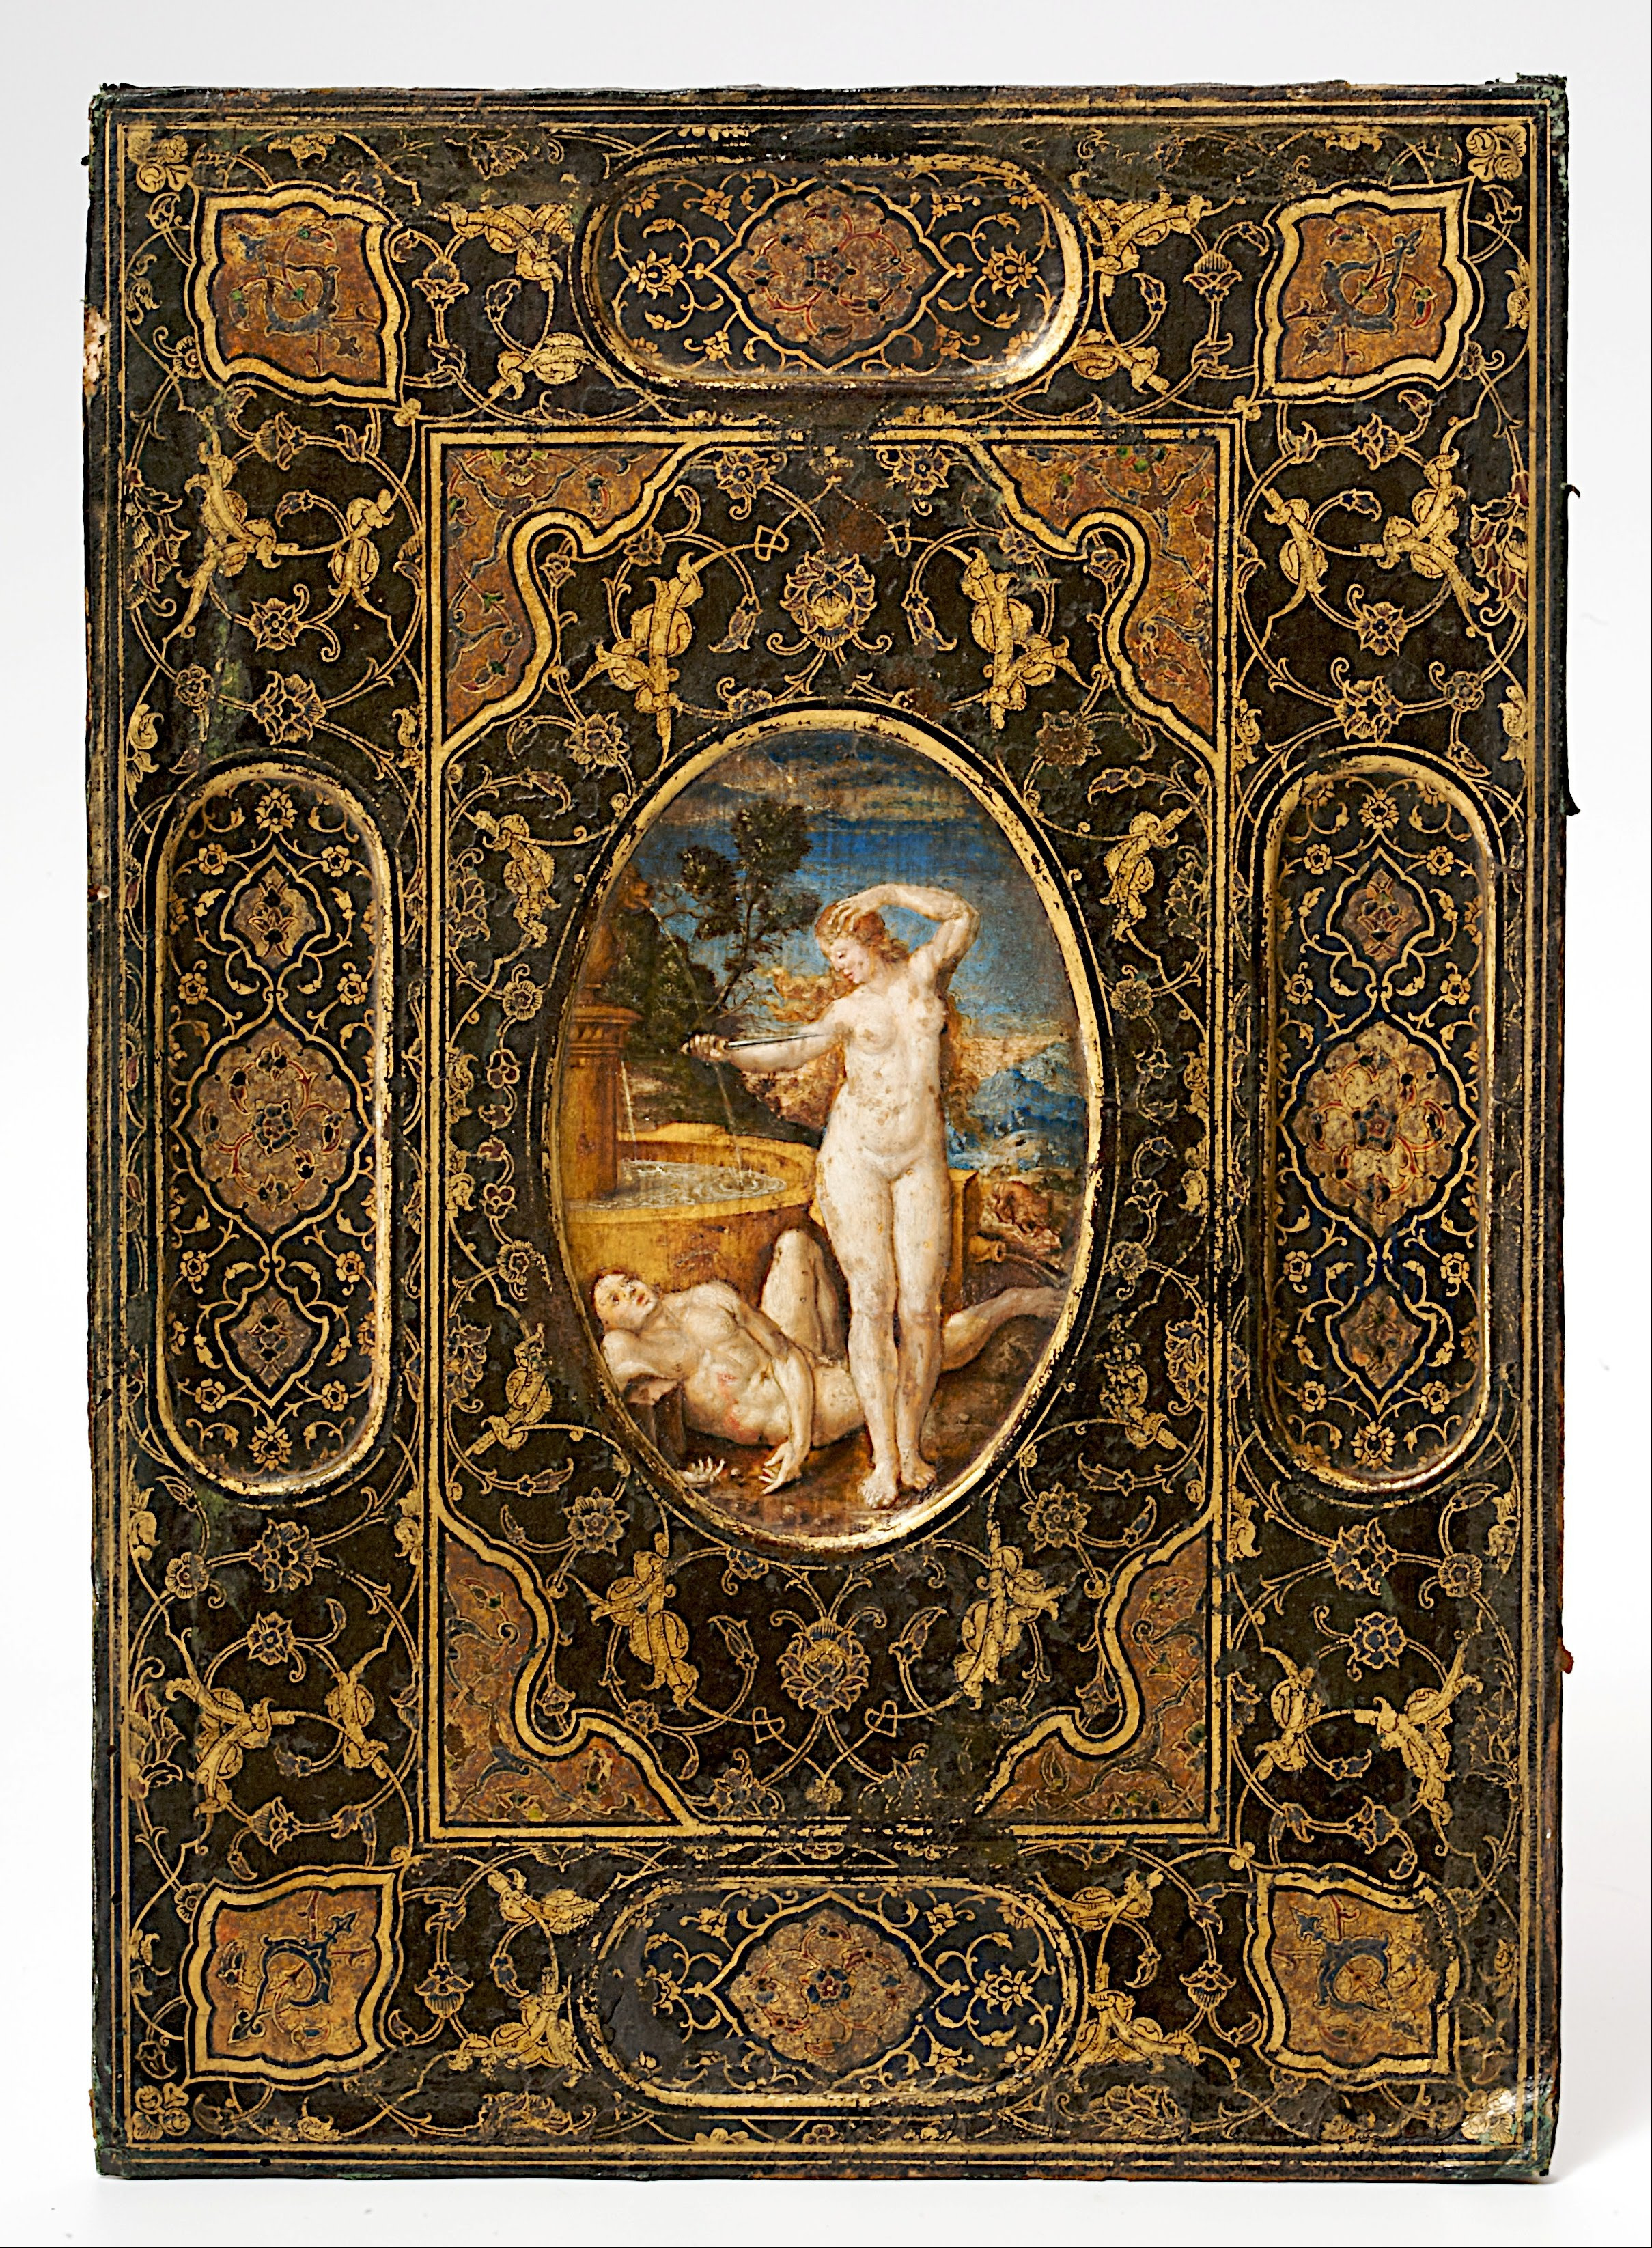 History Of Art Book Cover : File book cover google art project g wikimedia commons